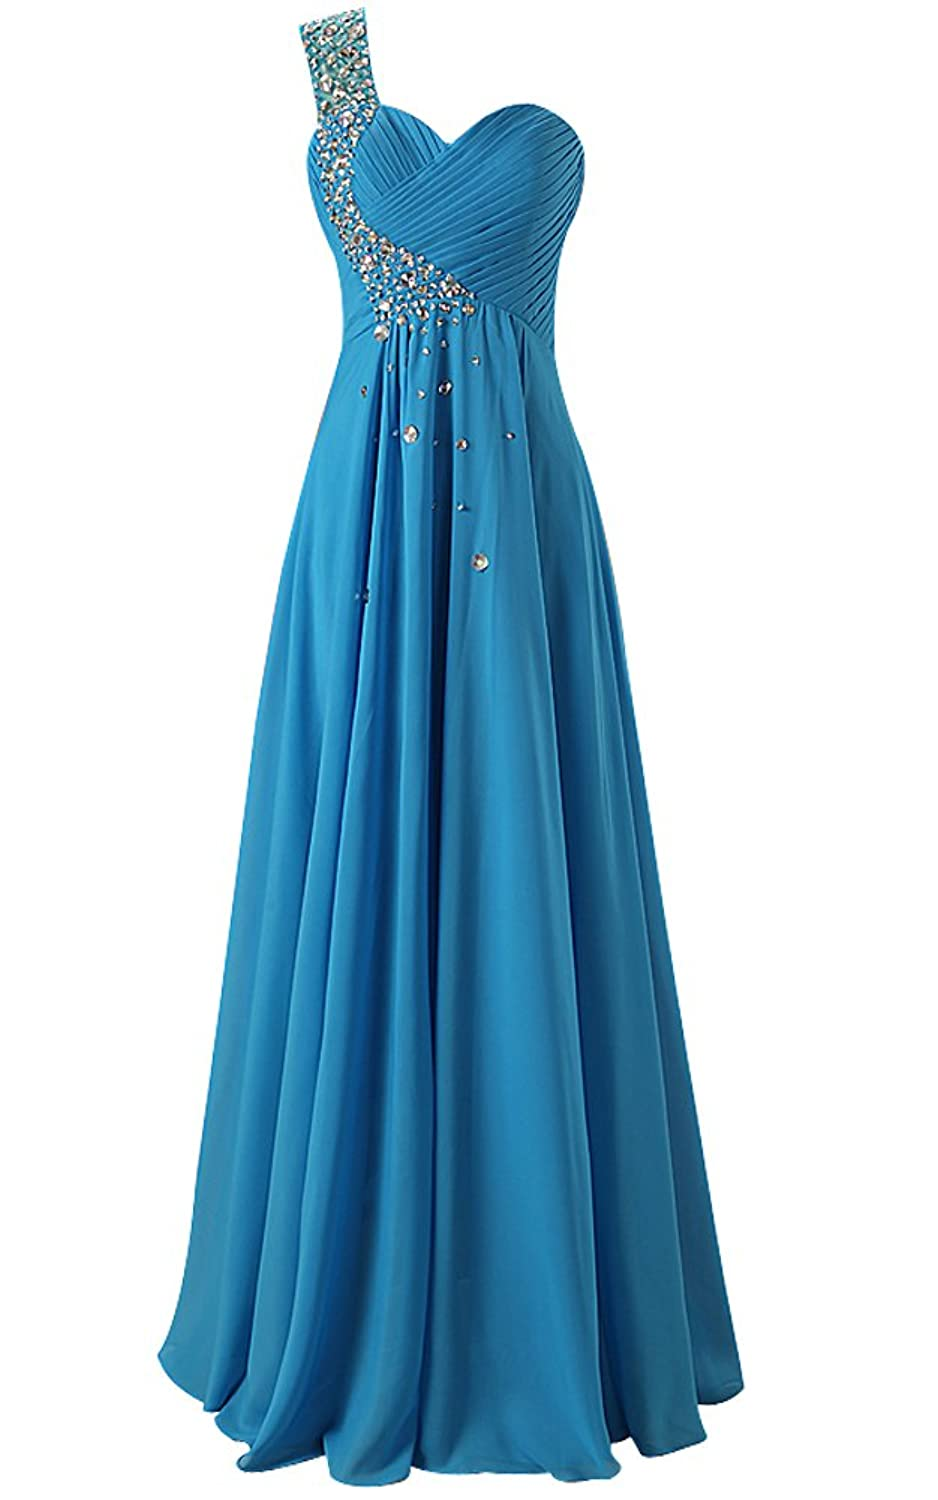 MicBridal? Womens One Shoulder Ruched Padded Long Chiffon Evening Dress